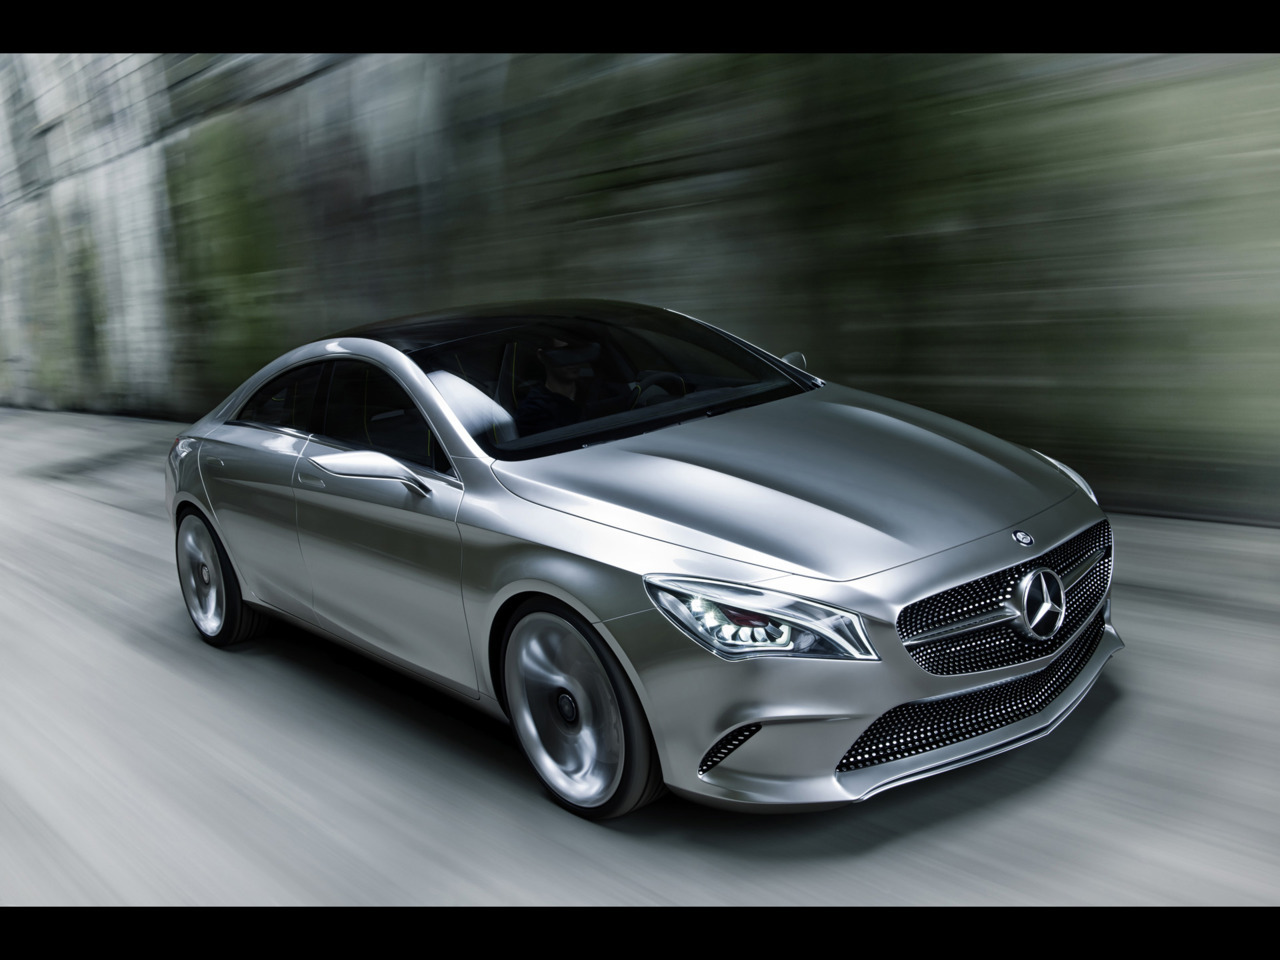 """2012 Mercedes-Benz Concept Style Coupe"" ""The almost production-standard Concept Style Coupé sets a new benchmark for avantgarde design in the executive segment"", emphasised Gorden Wagener, Head of Design at Mercedes-Benz. ""Its breathtaking proportions, sinewy fluid surfaces and sculptural lines are the physical expression of our dynamic design idiom."" ____________________ A couple of sketches to convey some kind of human emotion. This is basically all it takes to establish the progress from automotive concept to manufactured reality."